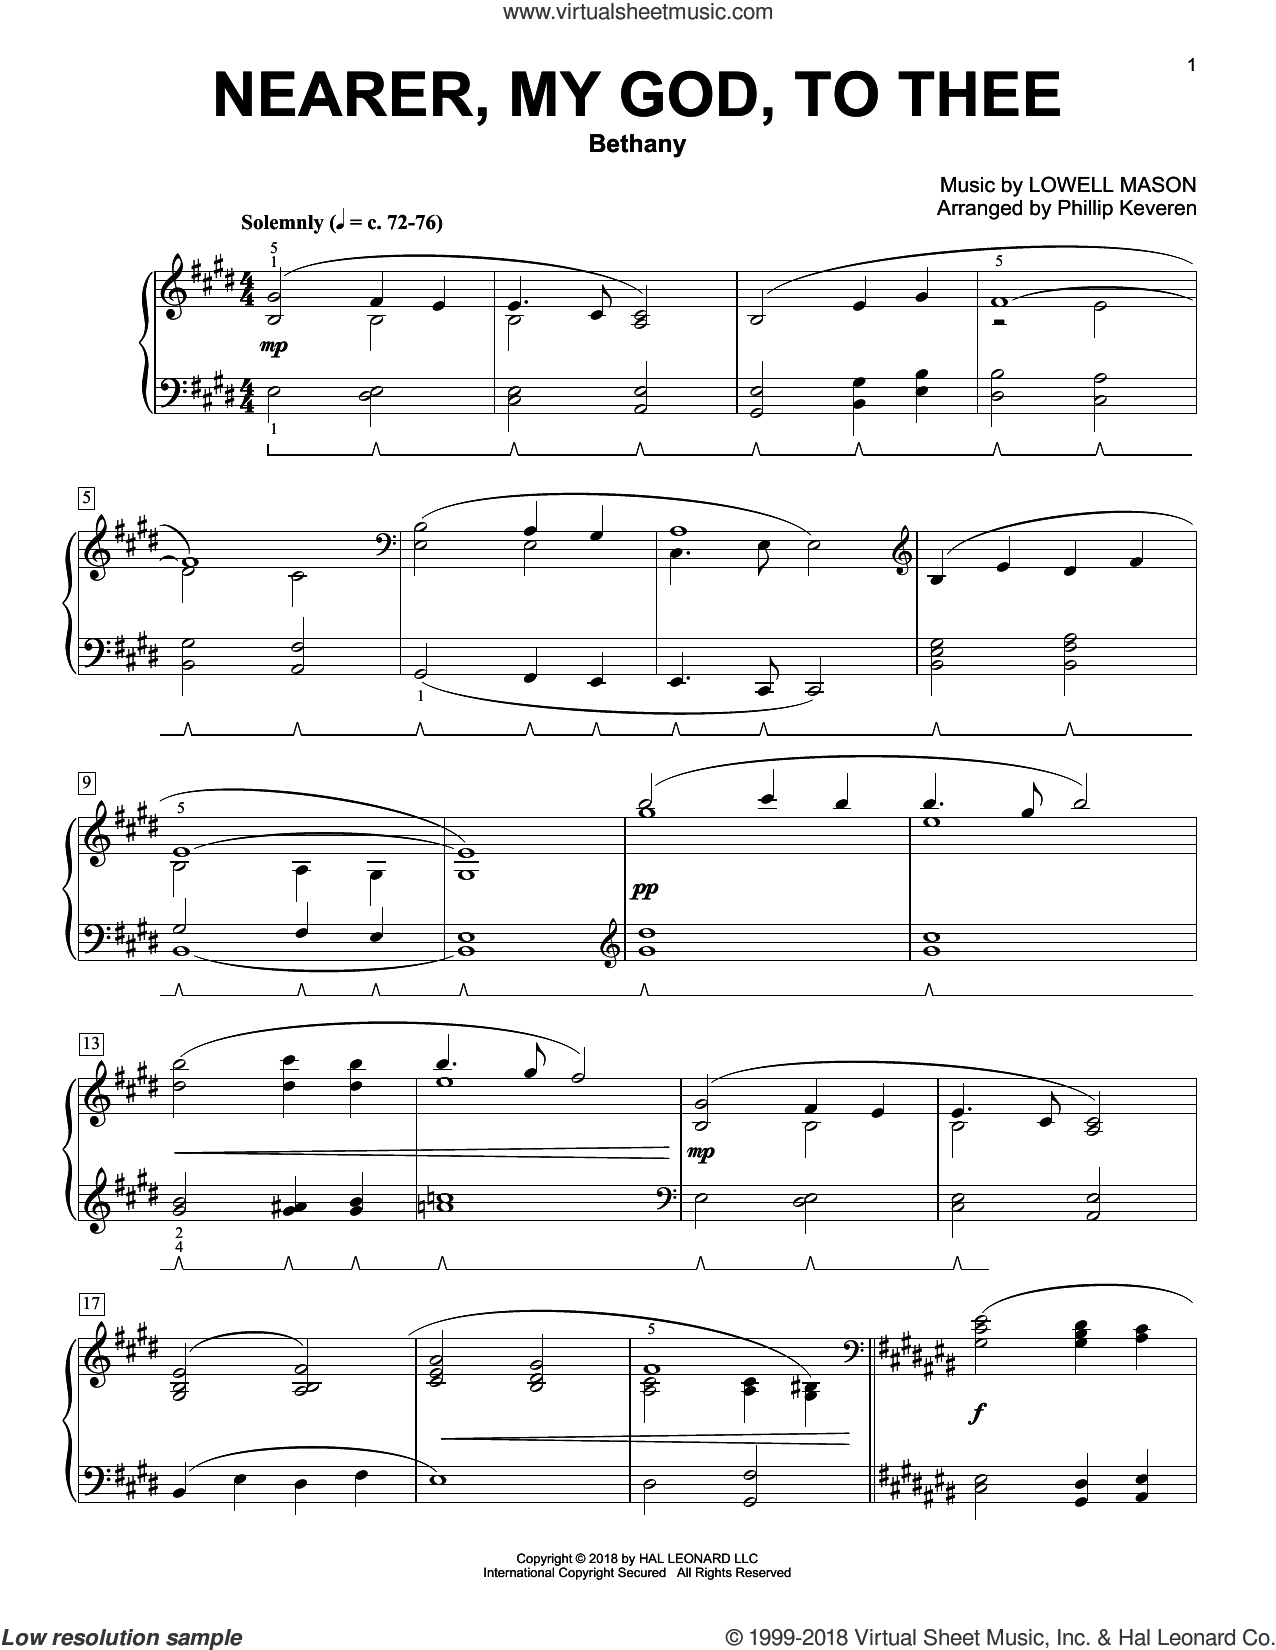 Nearer, My God, To Thee sheet music for piano solo by Lowell Mason, Phillip Keveren, Genesis 28:10-22 and Sarah F. Adams, classical score, intermediate skill level